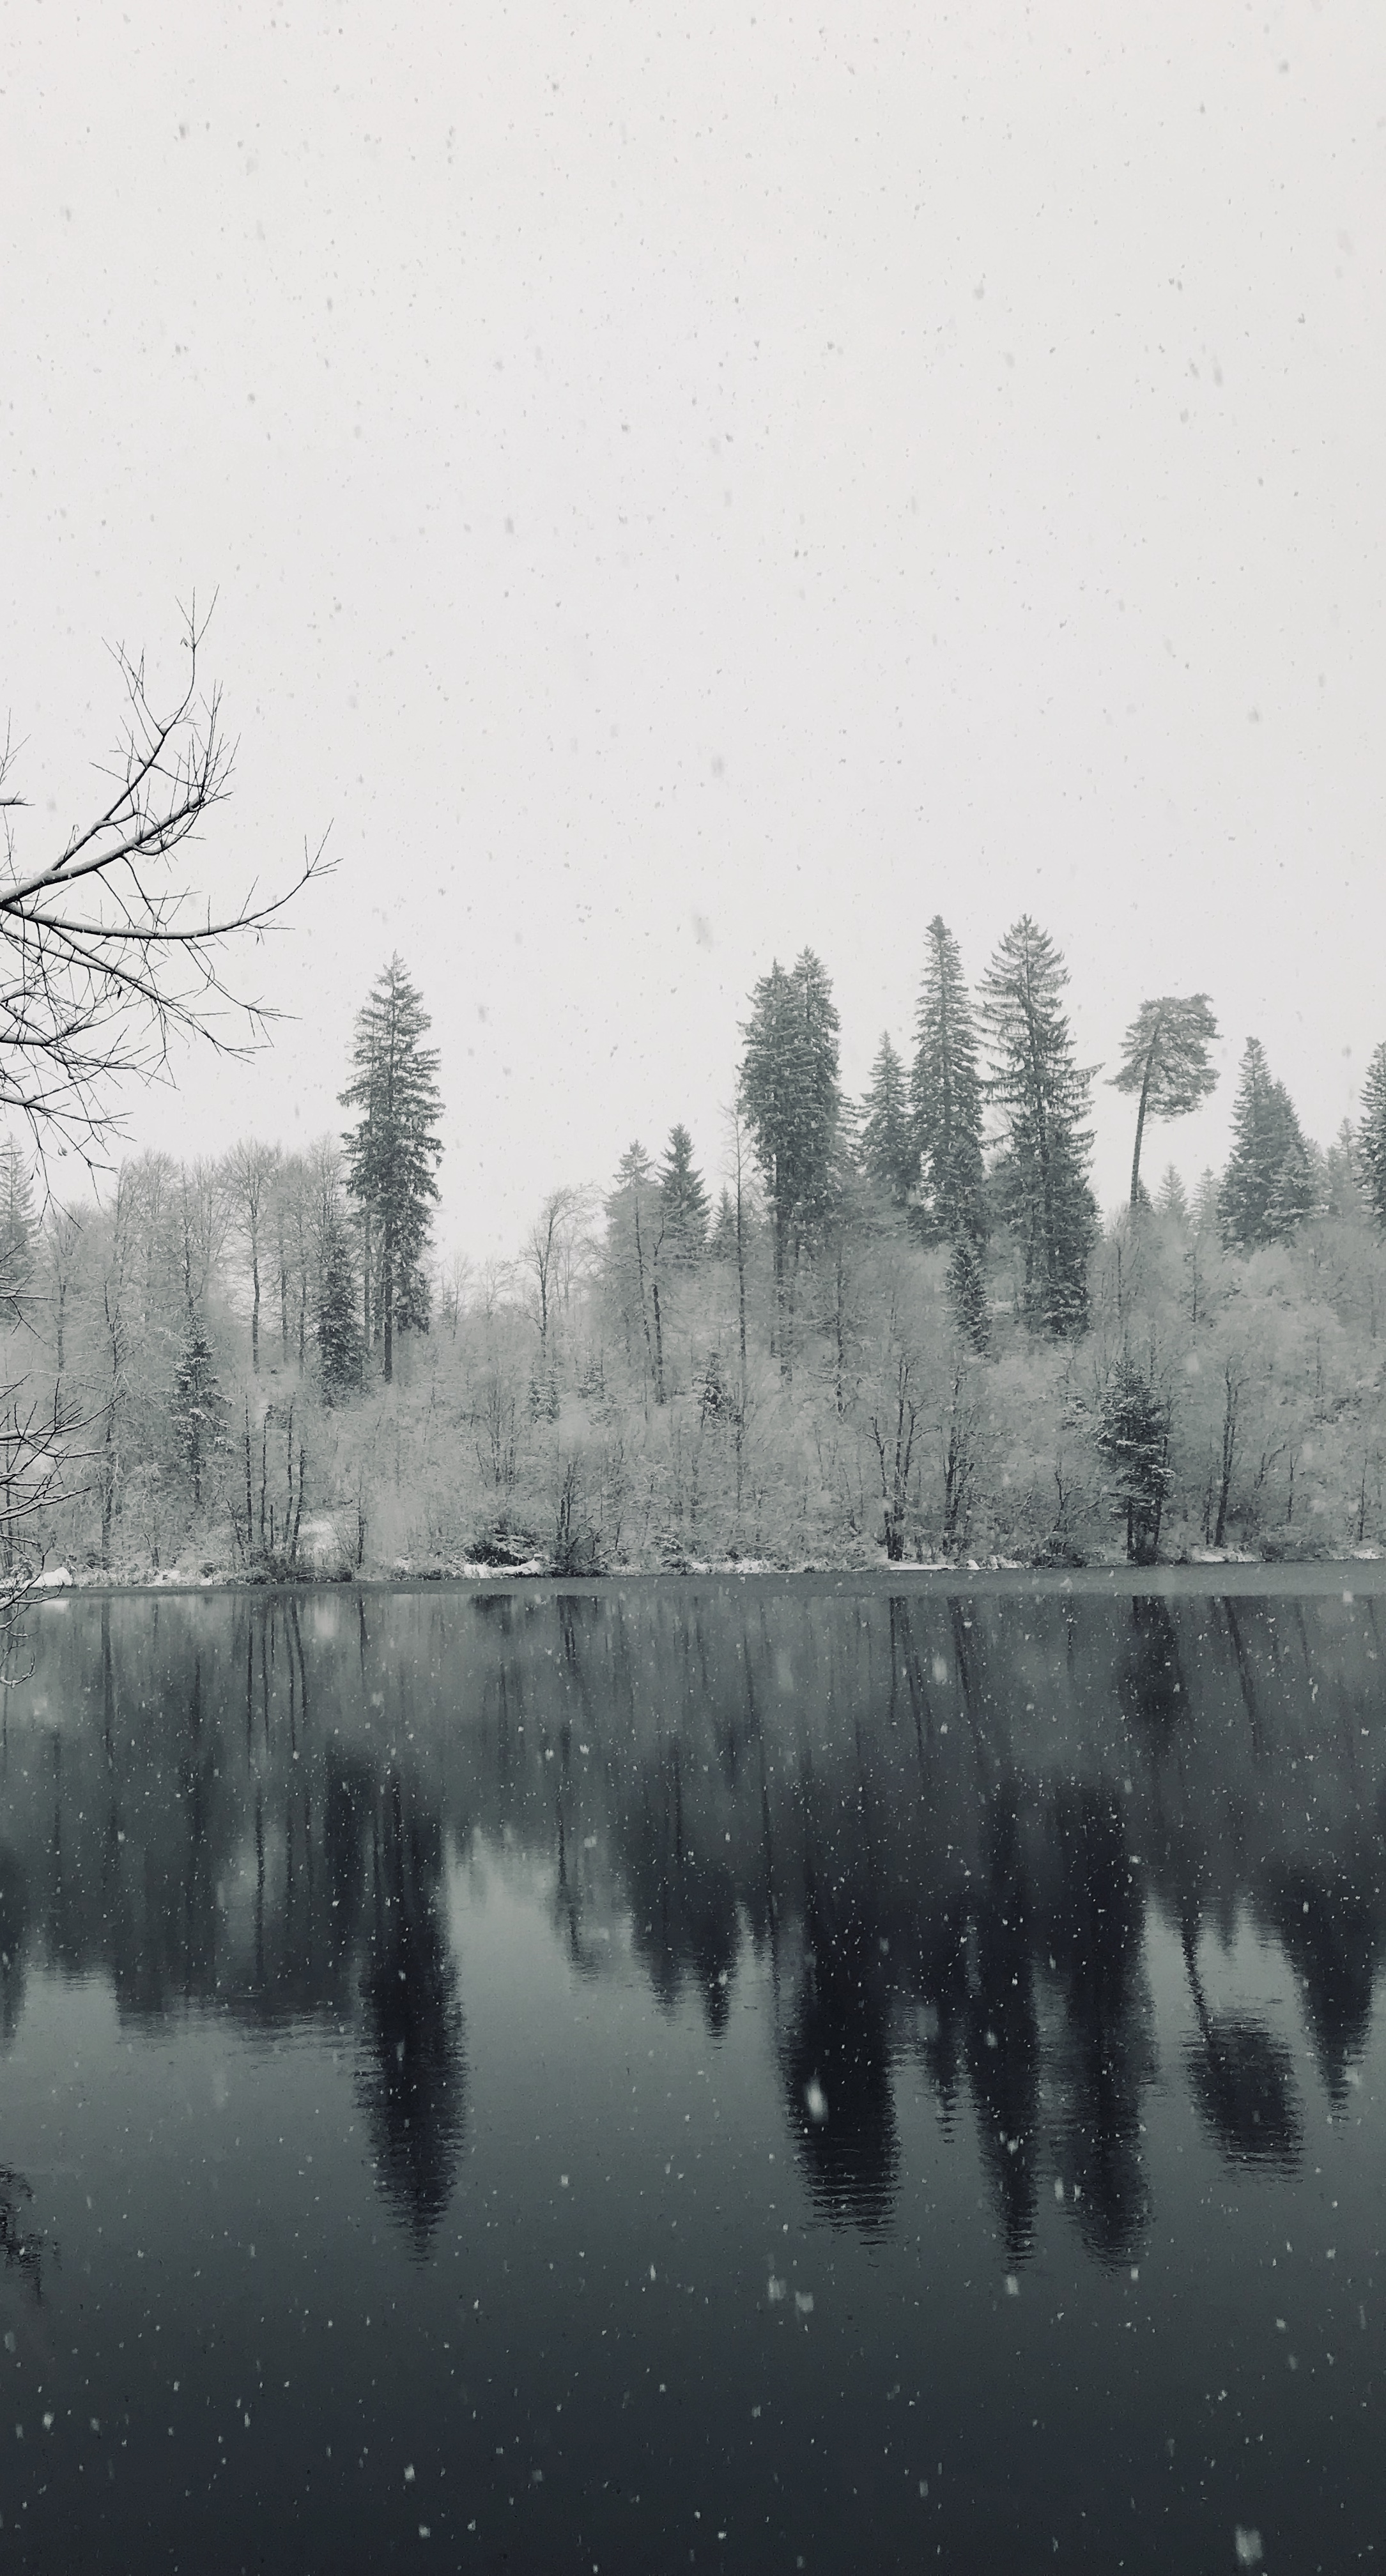 Crestasee Winter